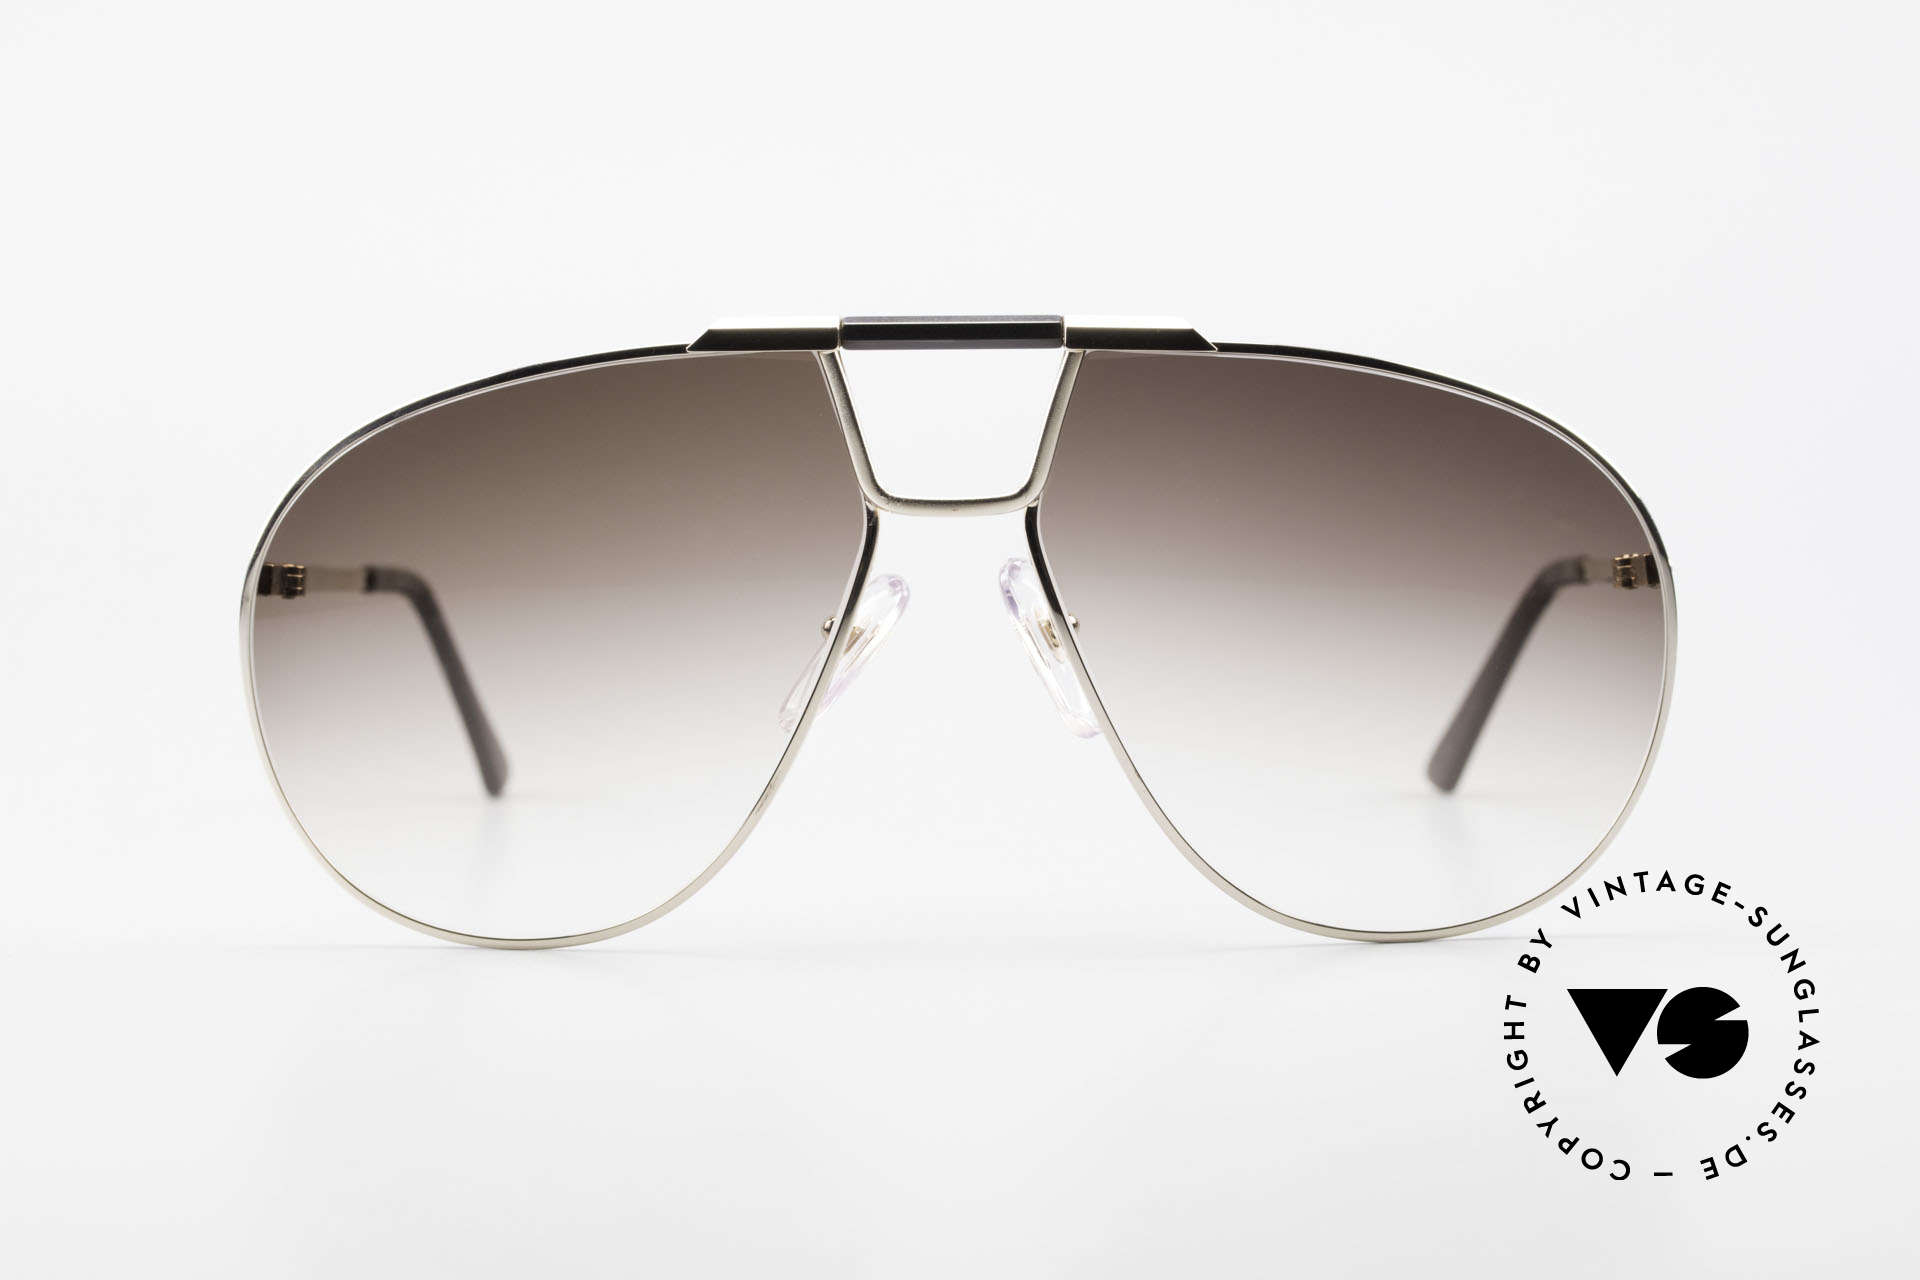 Christian Dior 2151 Monsieur Sunglasses Large, sophisticated 80's pilots sunglasses; size 63°16, Made for Men